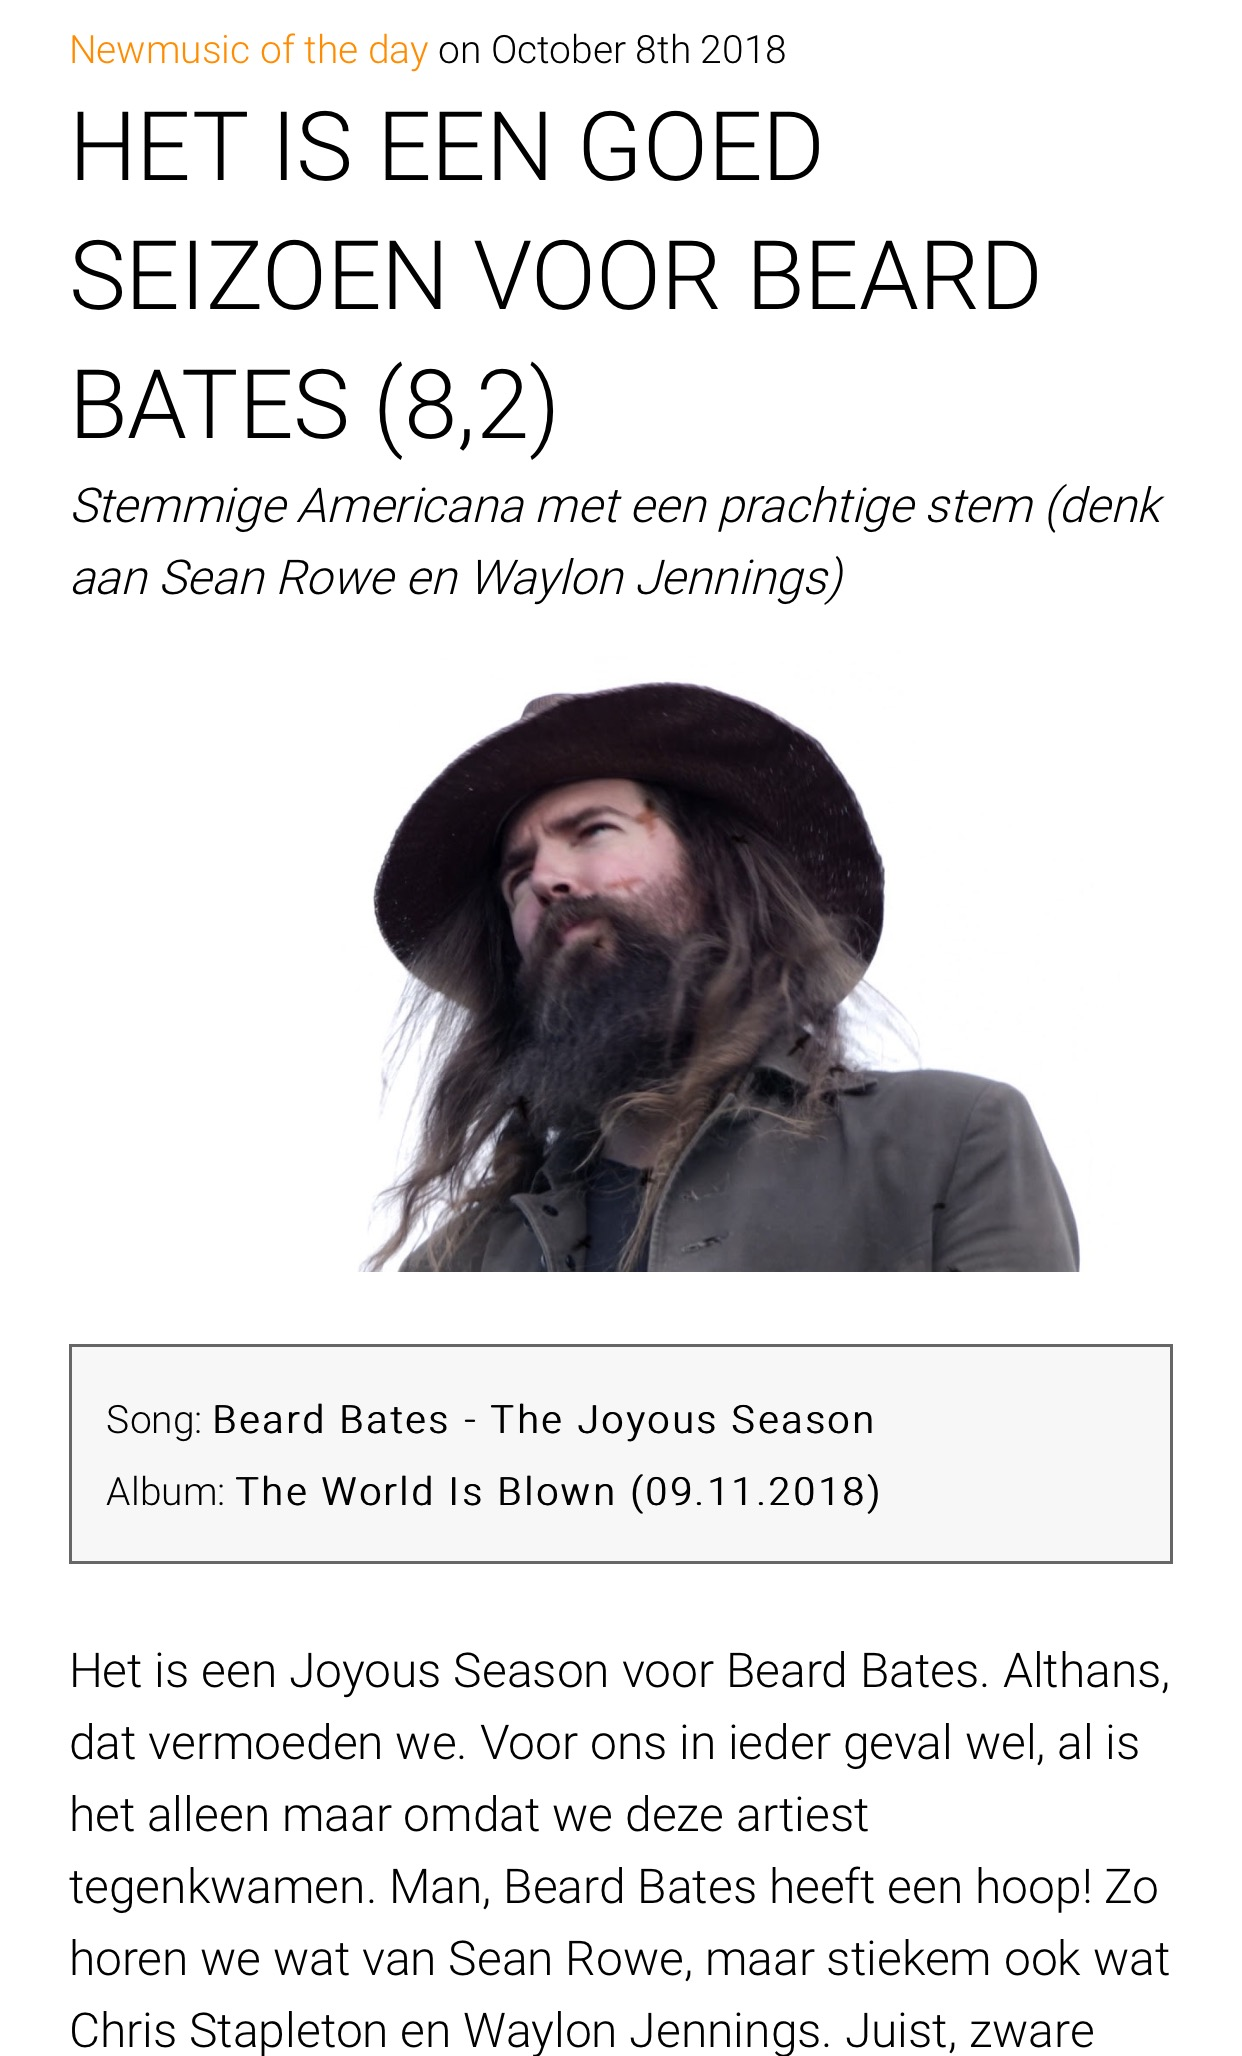 Beard Bates - Gobsmag - Joyous Season Feature